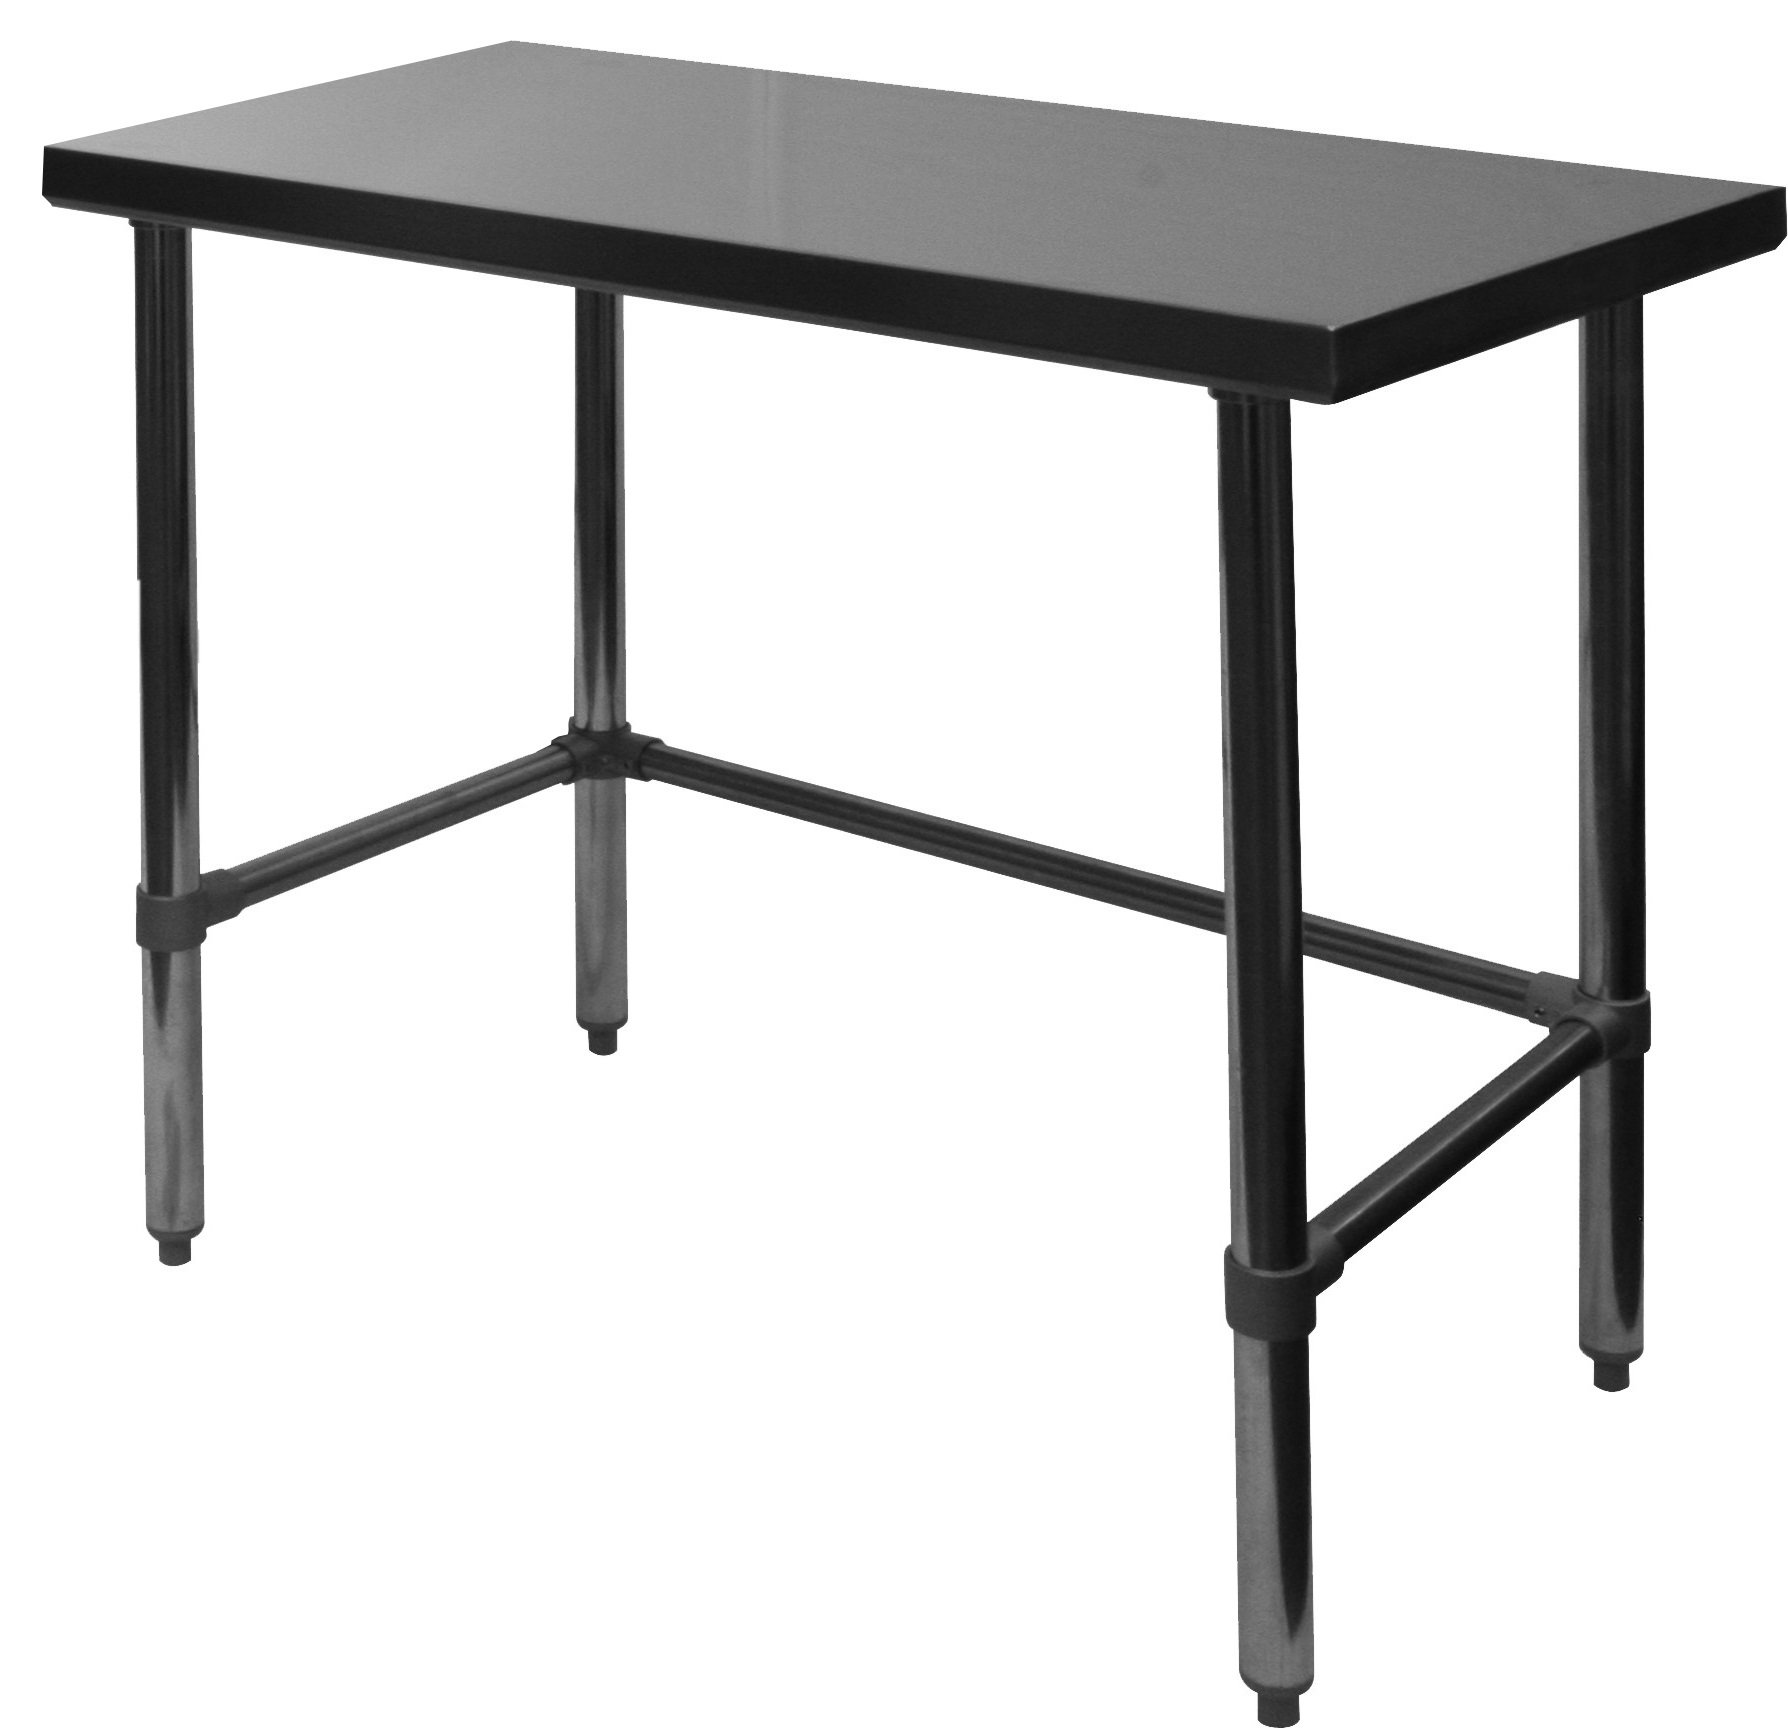 EquipmentBlvd Commercial Grade Premium All Stainless Steel Open Base Flat Top Work Table for Restaurant, Home, Office, Kitchen or Garage, 30'' W x 48'' L x 35'' H, ETL or NSF Certified. by EquipmentBlvd